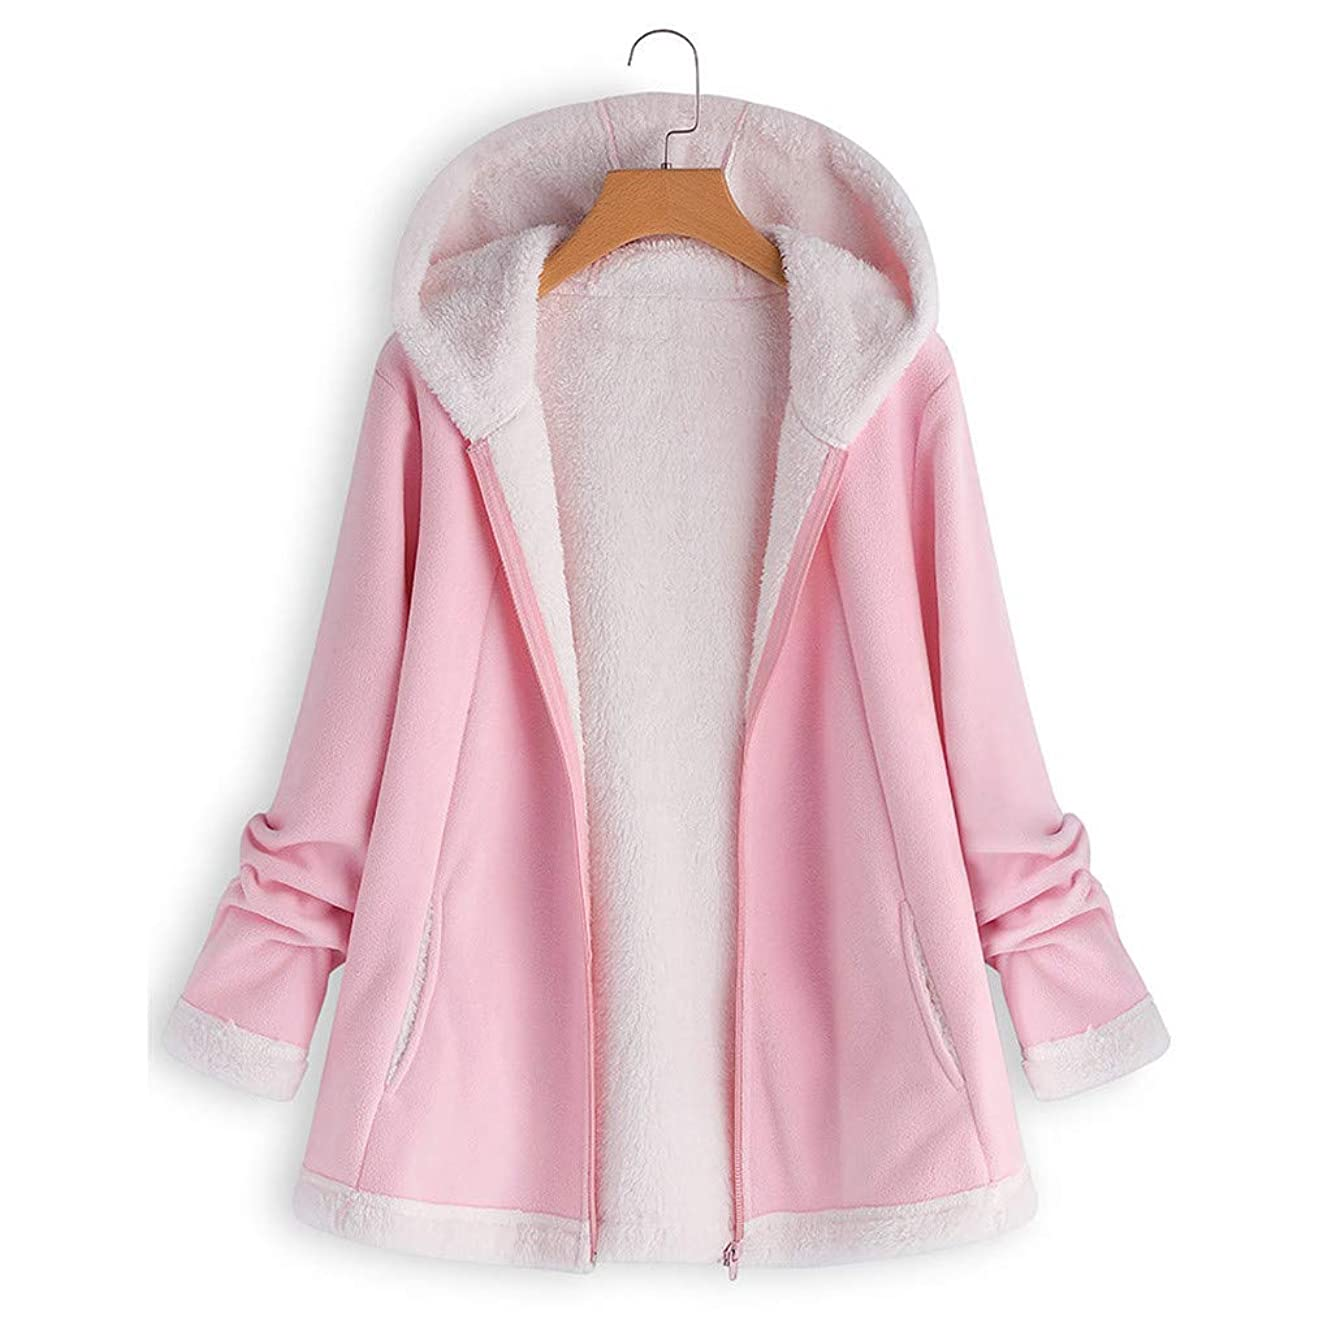 ANJUNIE Jacket Women's Curved Hem Longline Faux Fur Sherpa Fleece Hoodie Coat